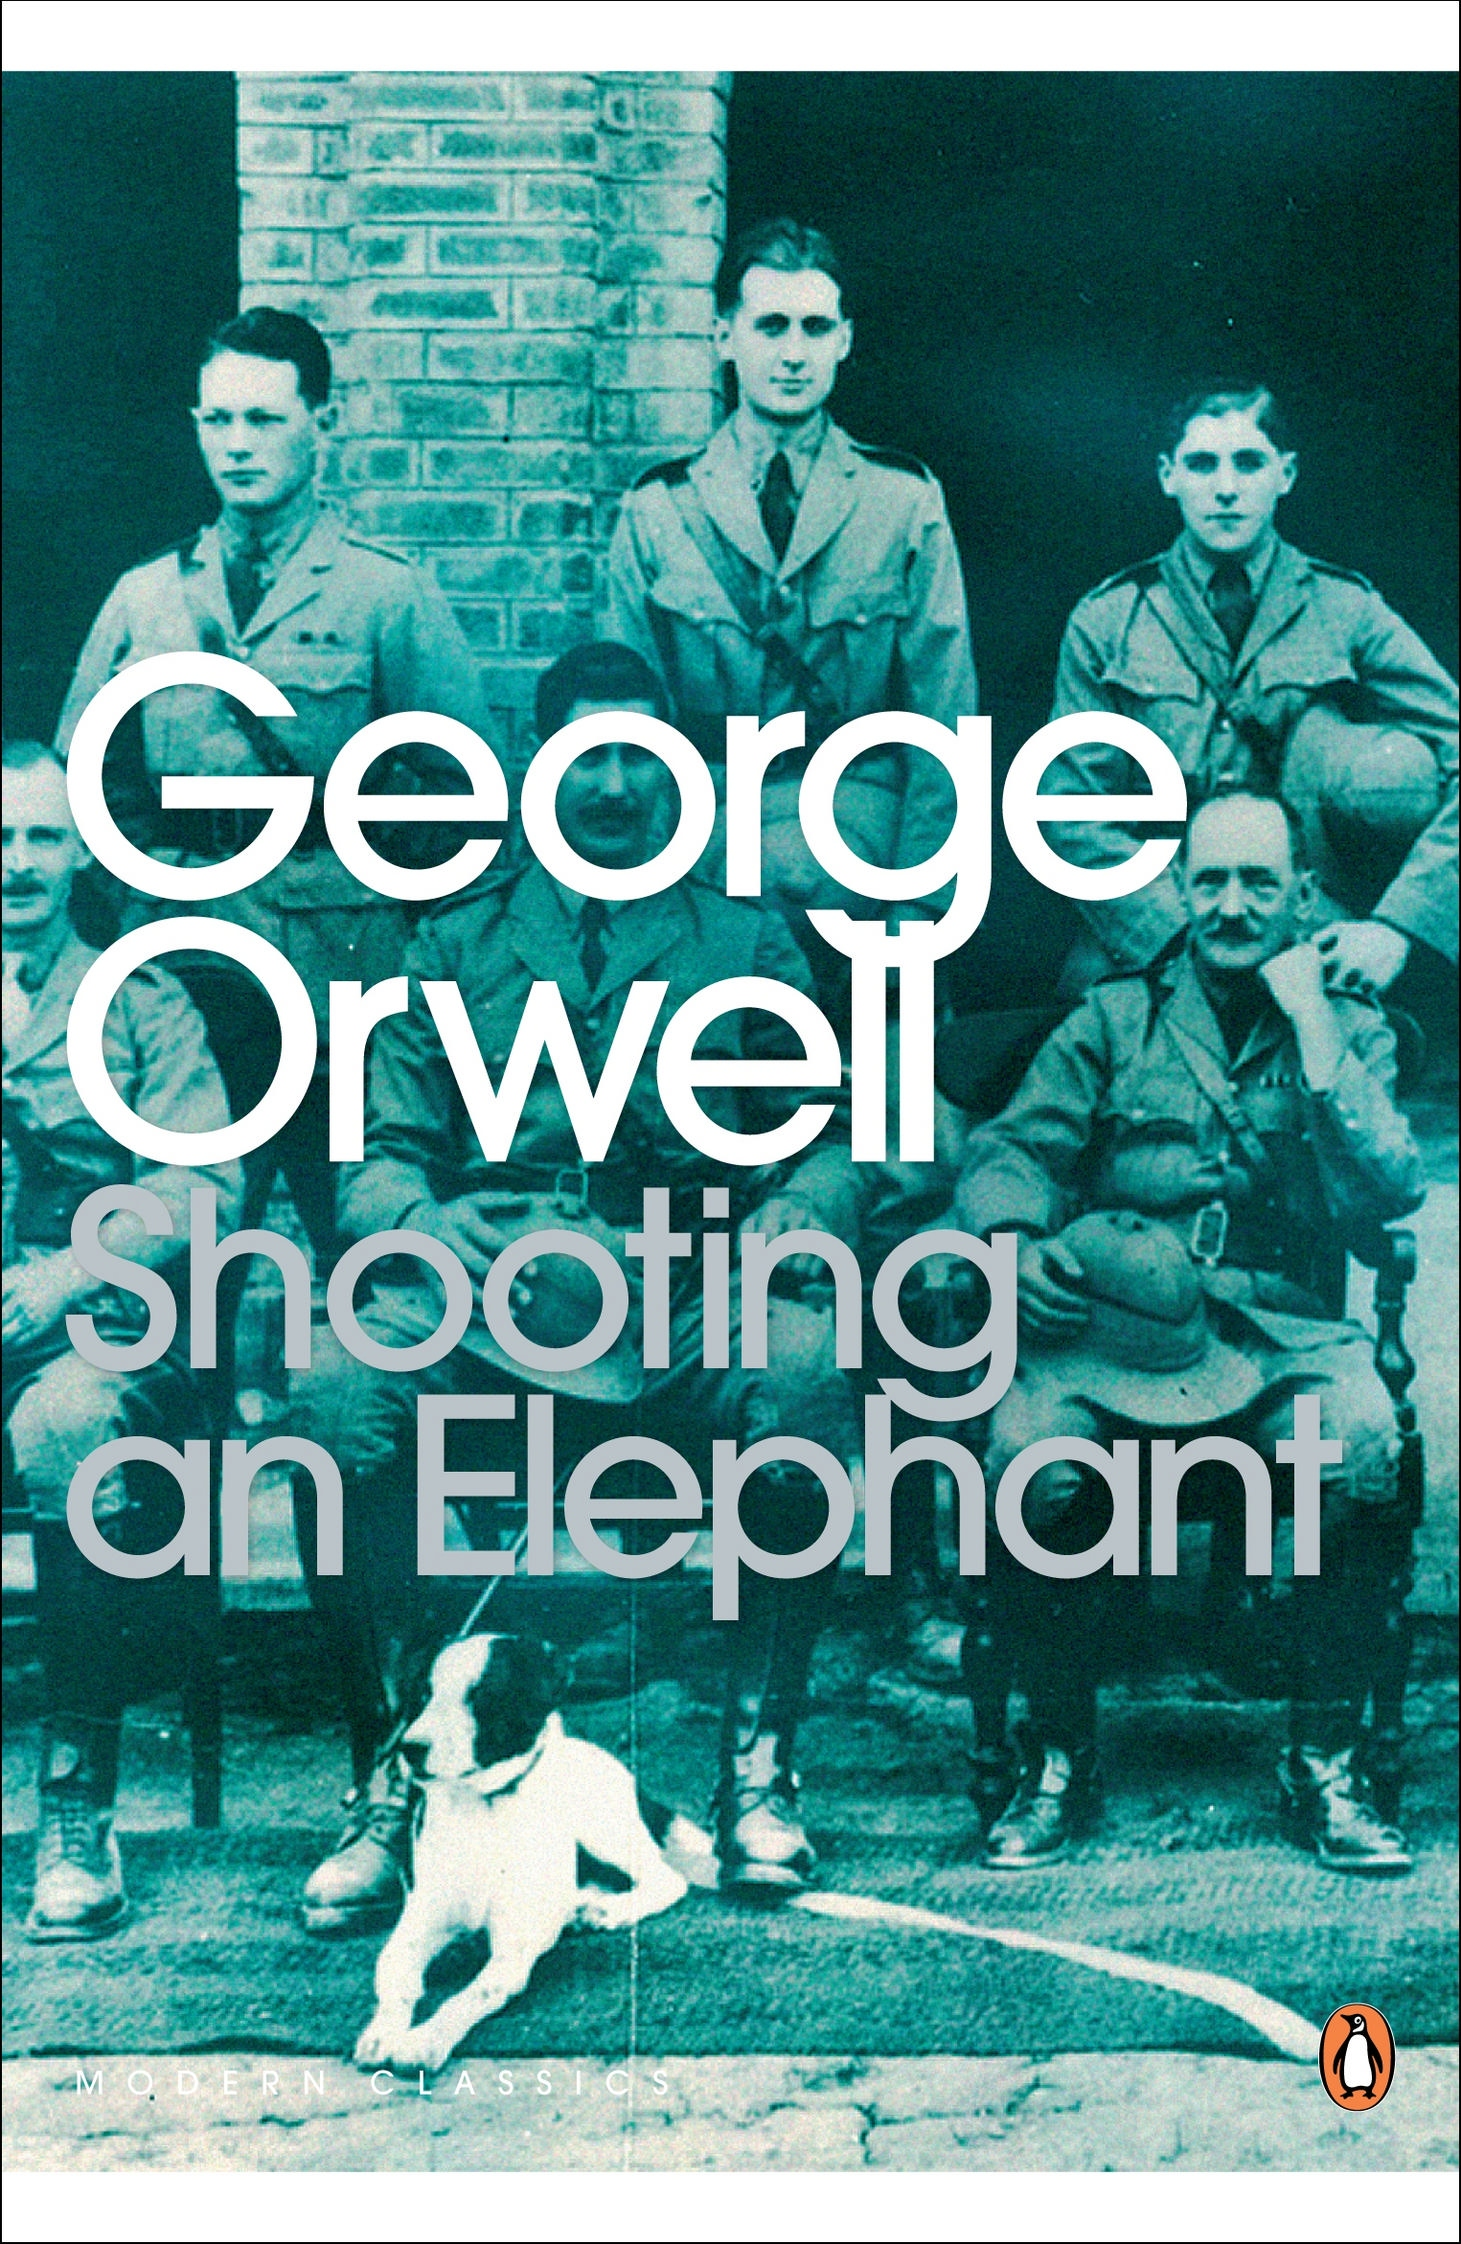 020 Orwell Essay Example George Frightening Essays 1984 Summary Collected Pdf On Writing Full